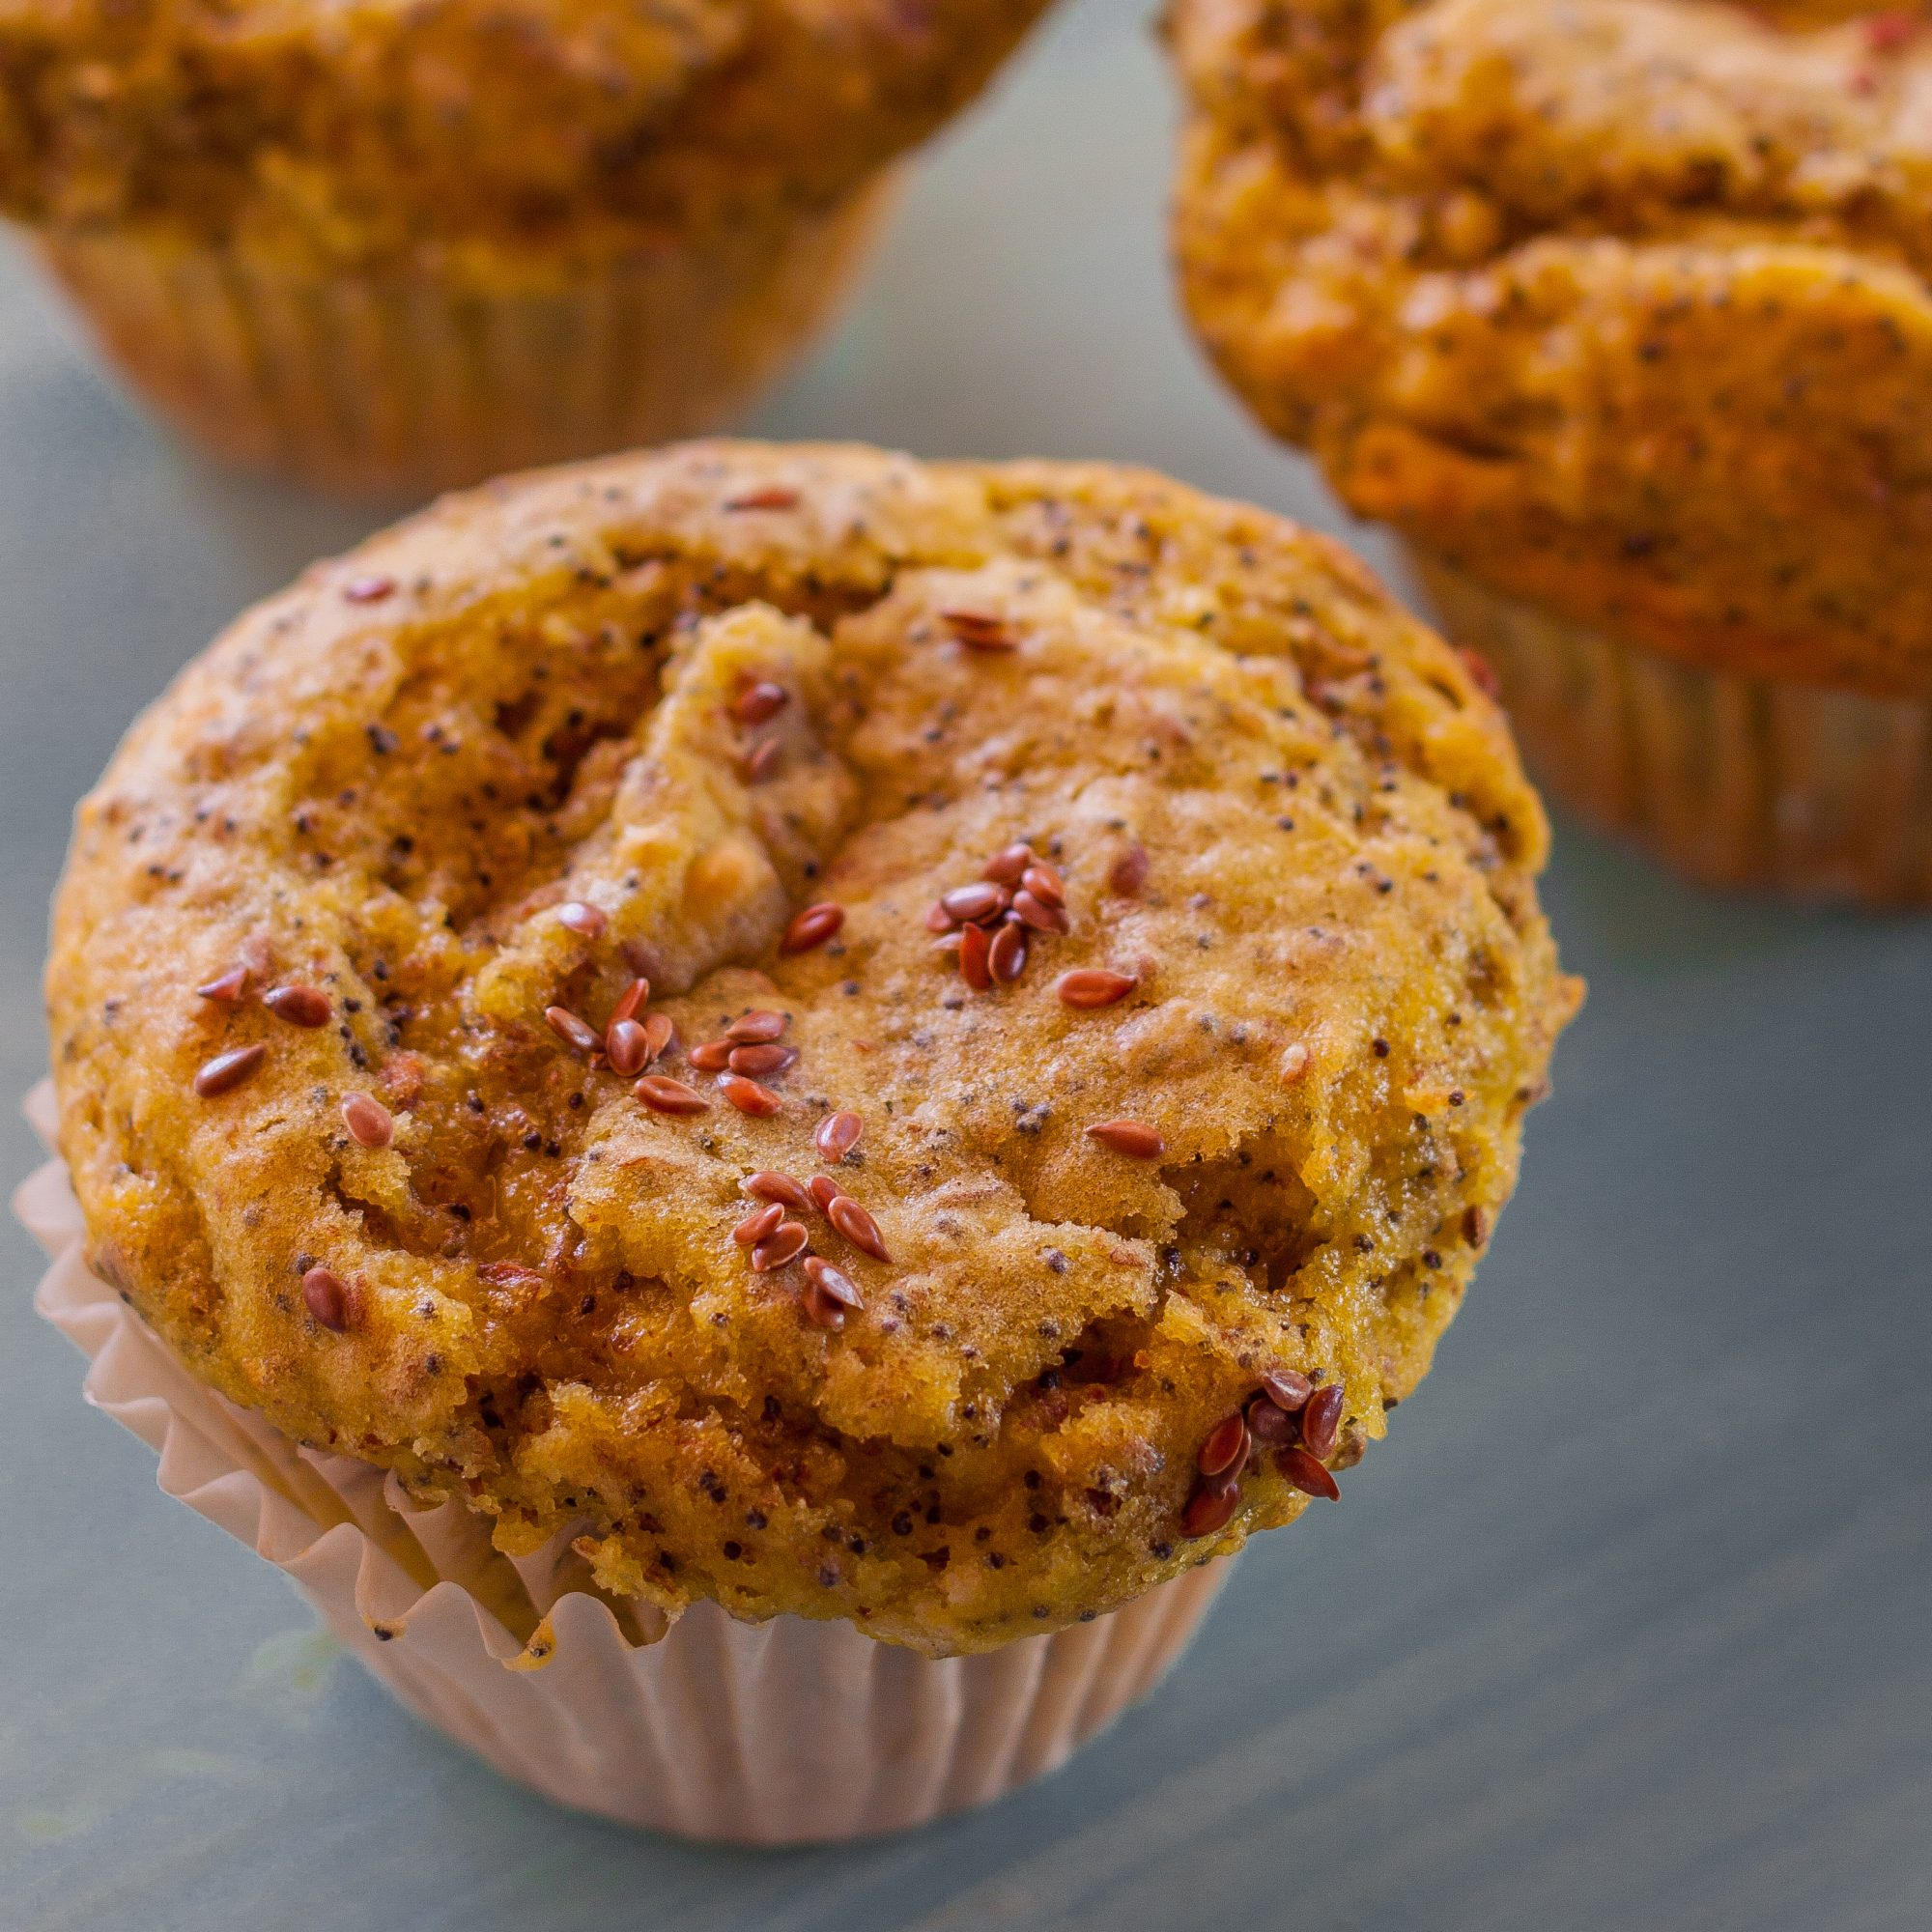 Lemon-Poppy Flax Seed Muffins